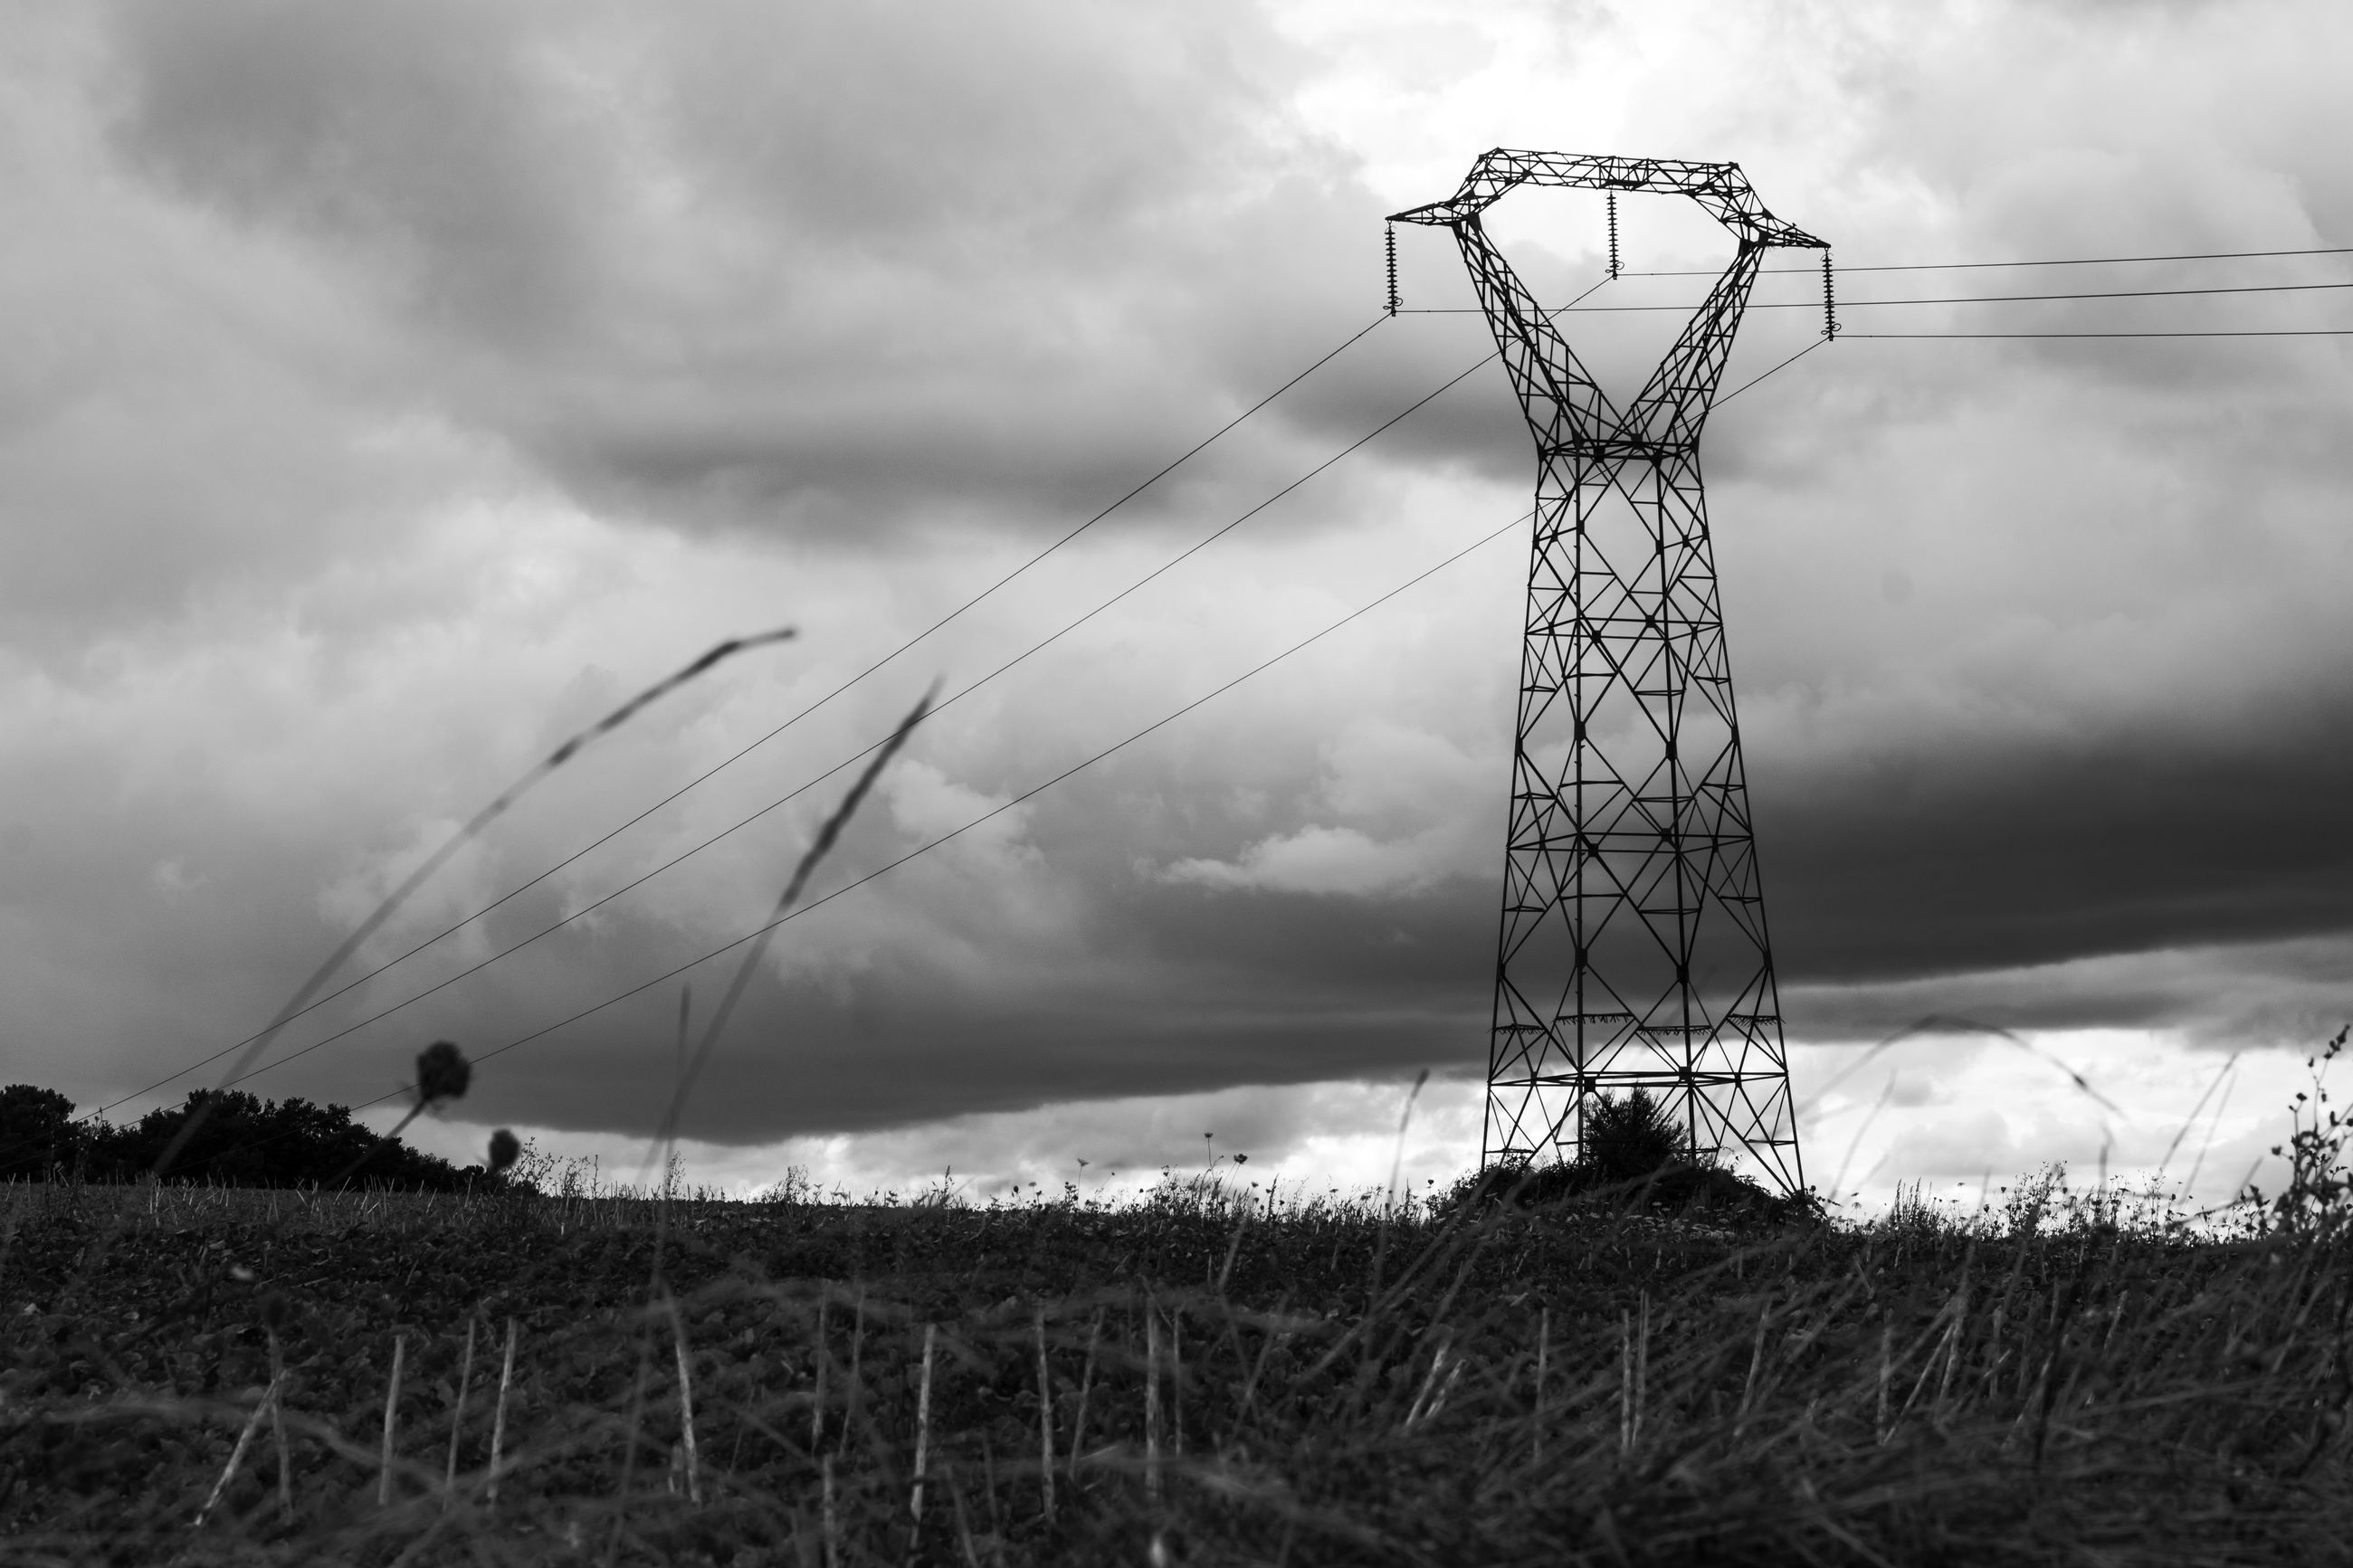 cloud - sky, sky, fuel and power generation, land, field, nature, landscape, environment, technology, electricity pylon, electricity, low angle view, plant, rural scene, outdoors, day, architecture, built structure, power supply, no people